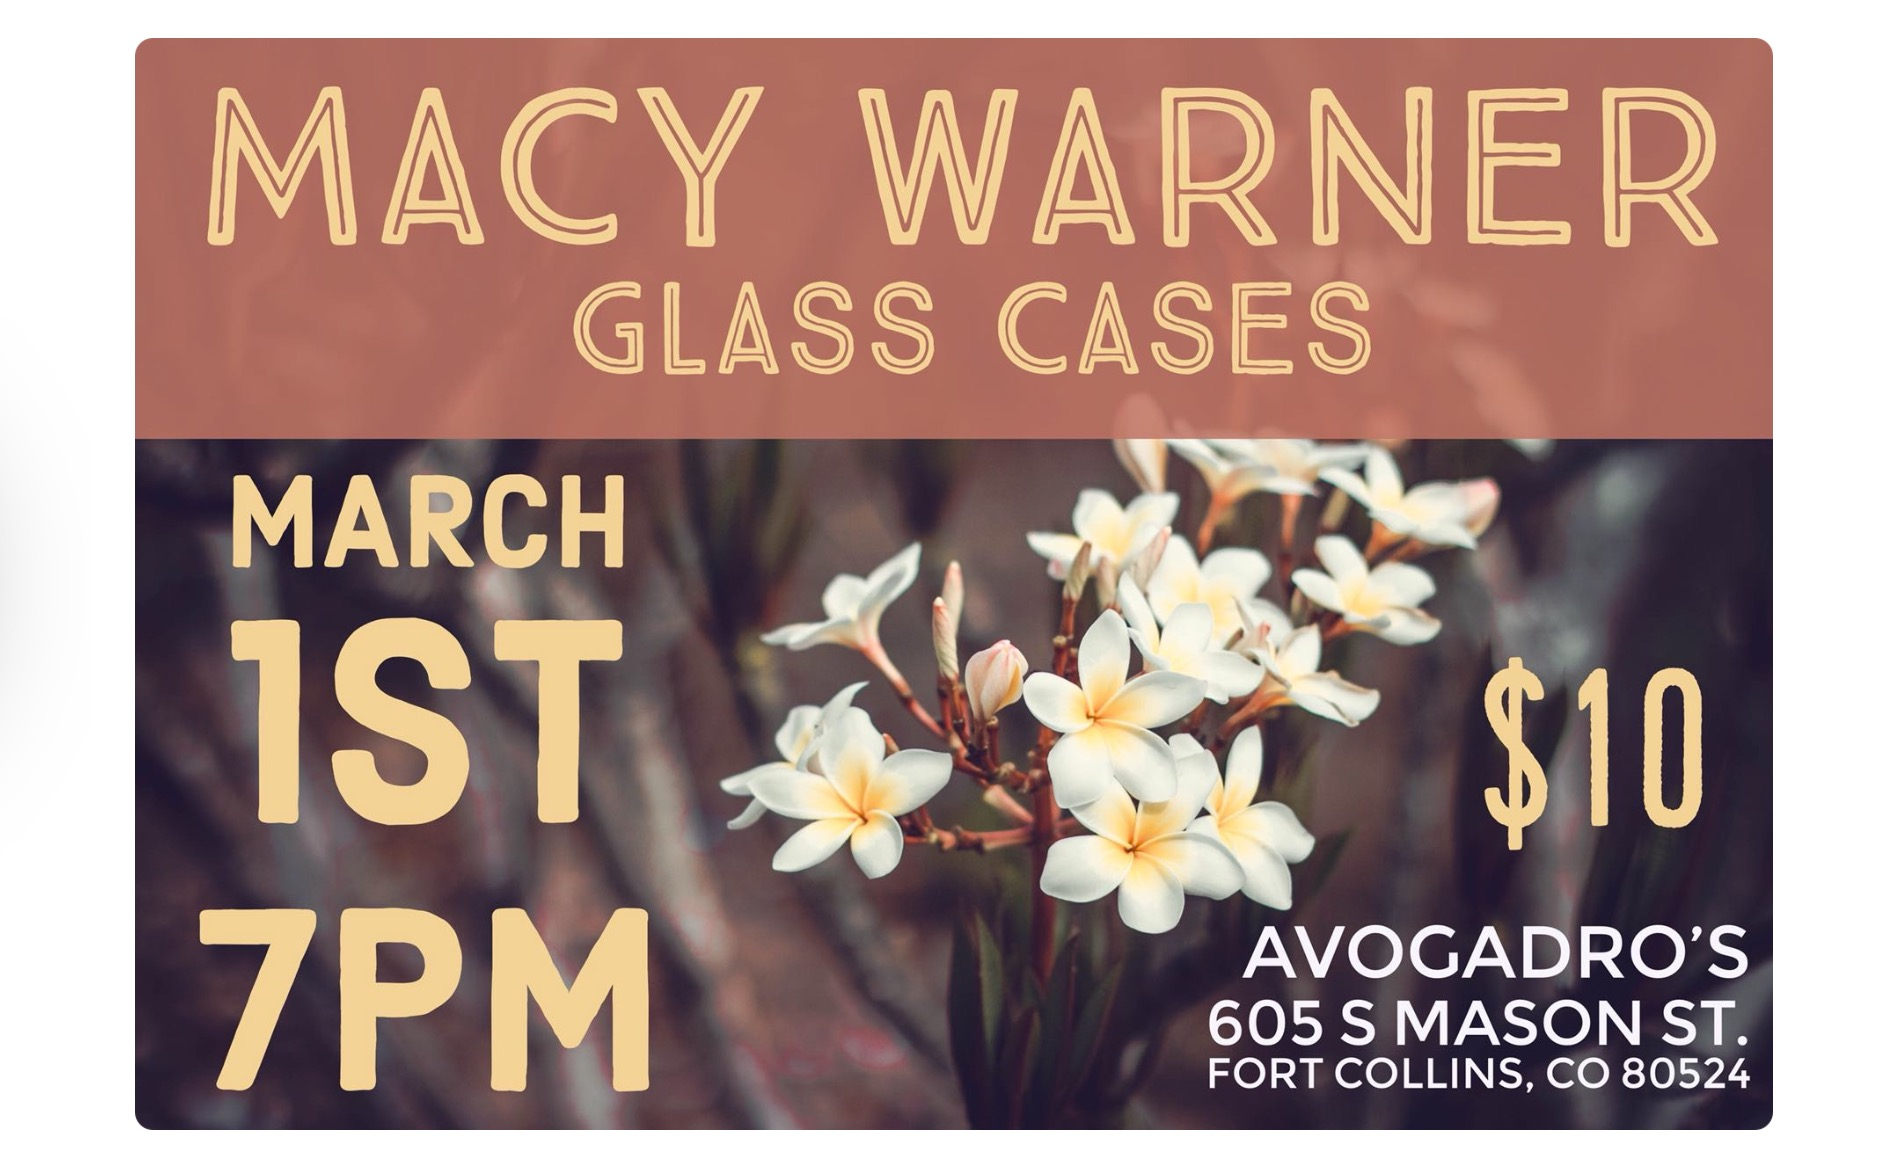 MACY WARNER GLASS CASES